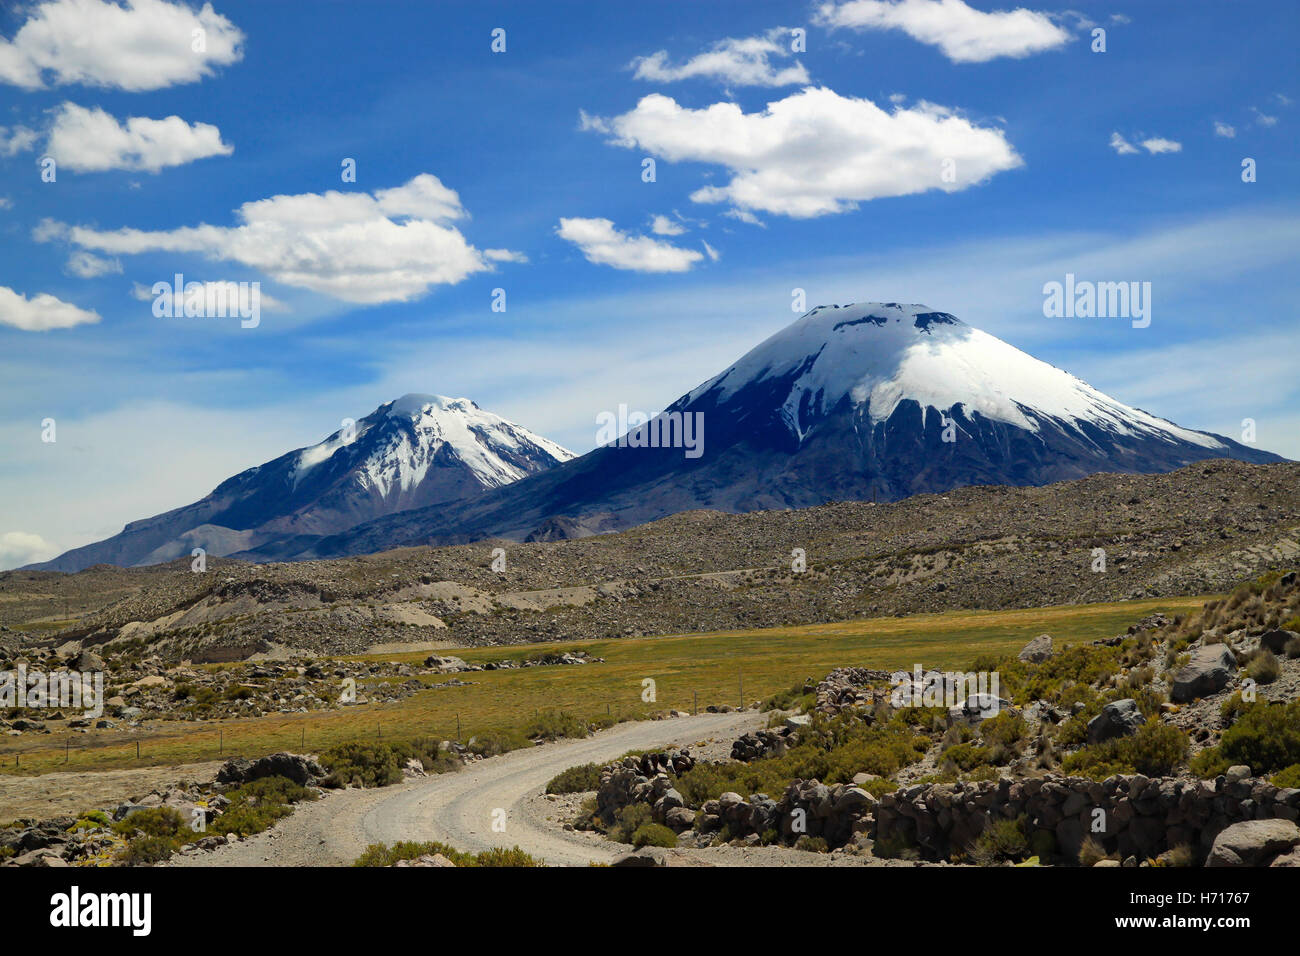 Scenic view of volcanic group. Payachata volcanic group at Lauca National Park, Chile - Stock Image